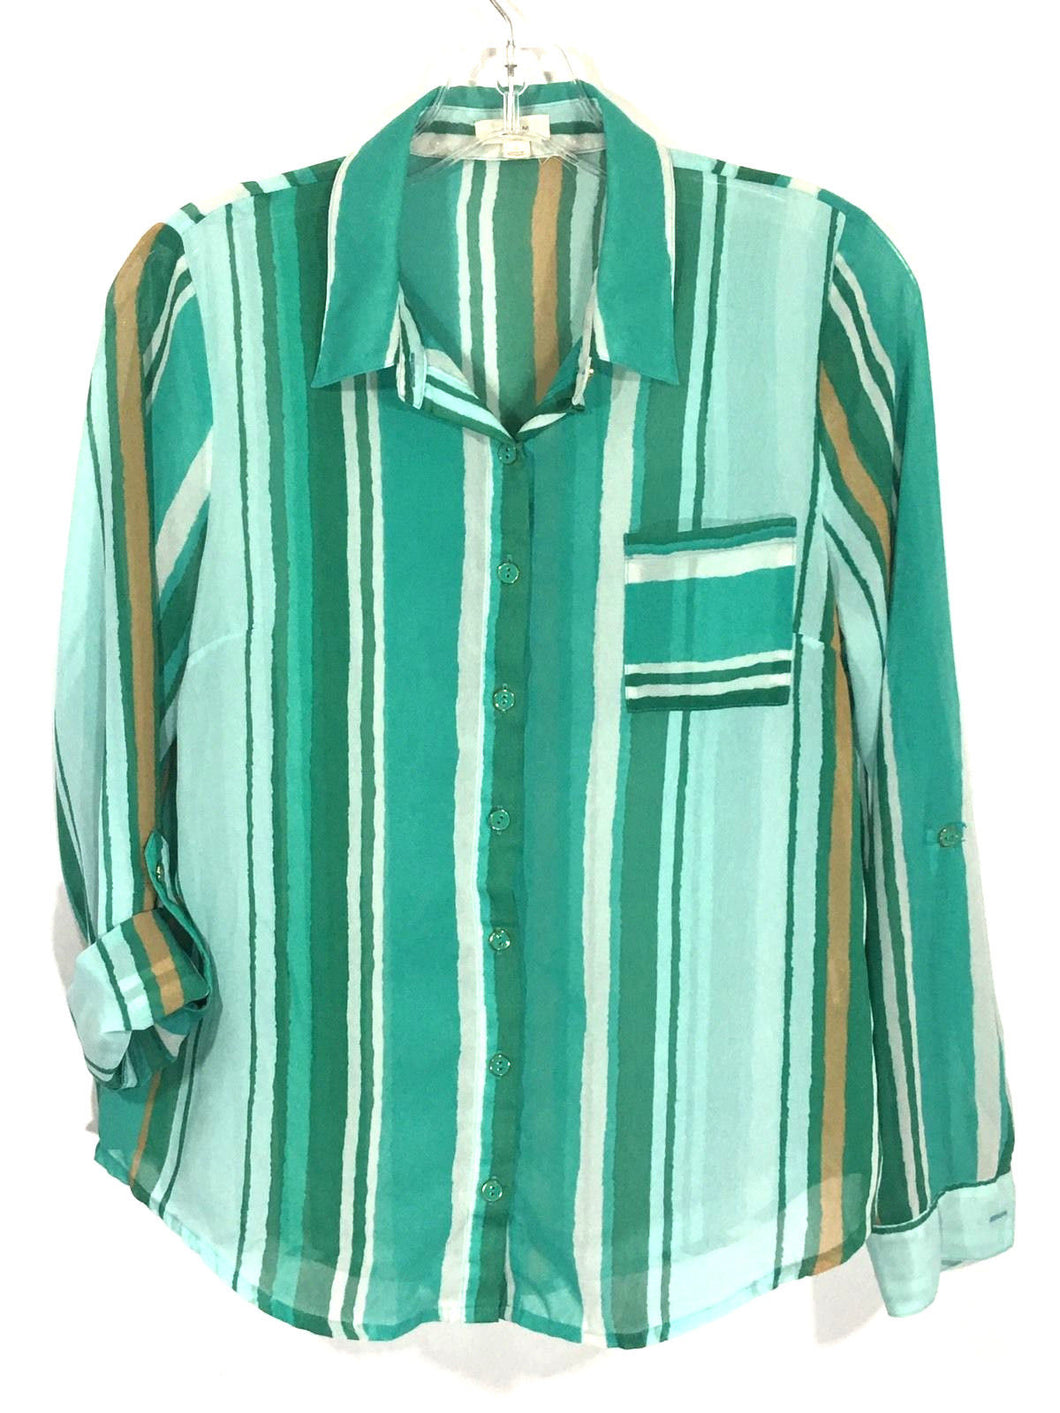 Anthropologie E Hanger M Button Down Green Striped Sheer Shirt Womens Small S - Preowned - FunkyCrap Boutique